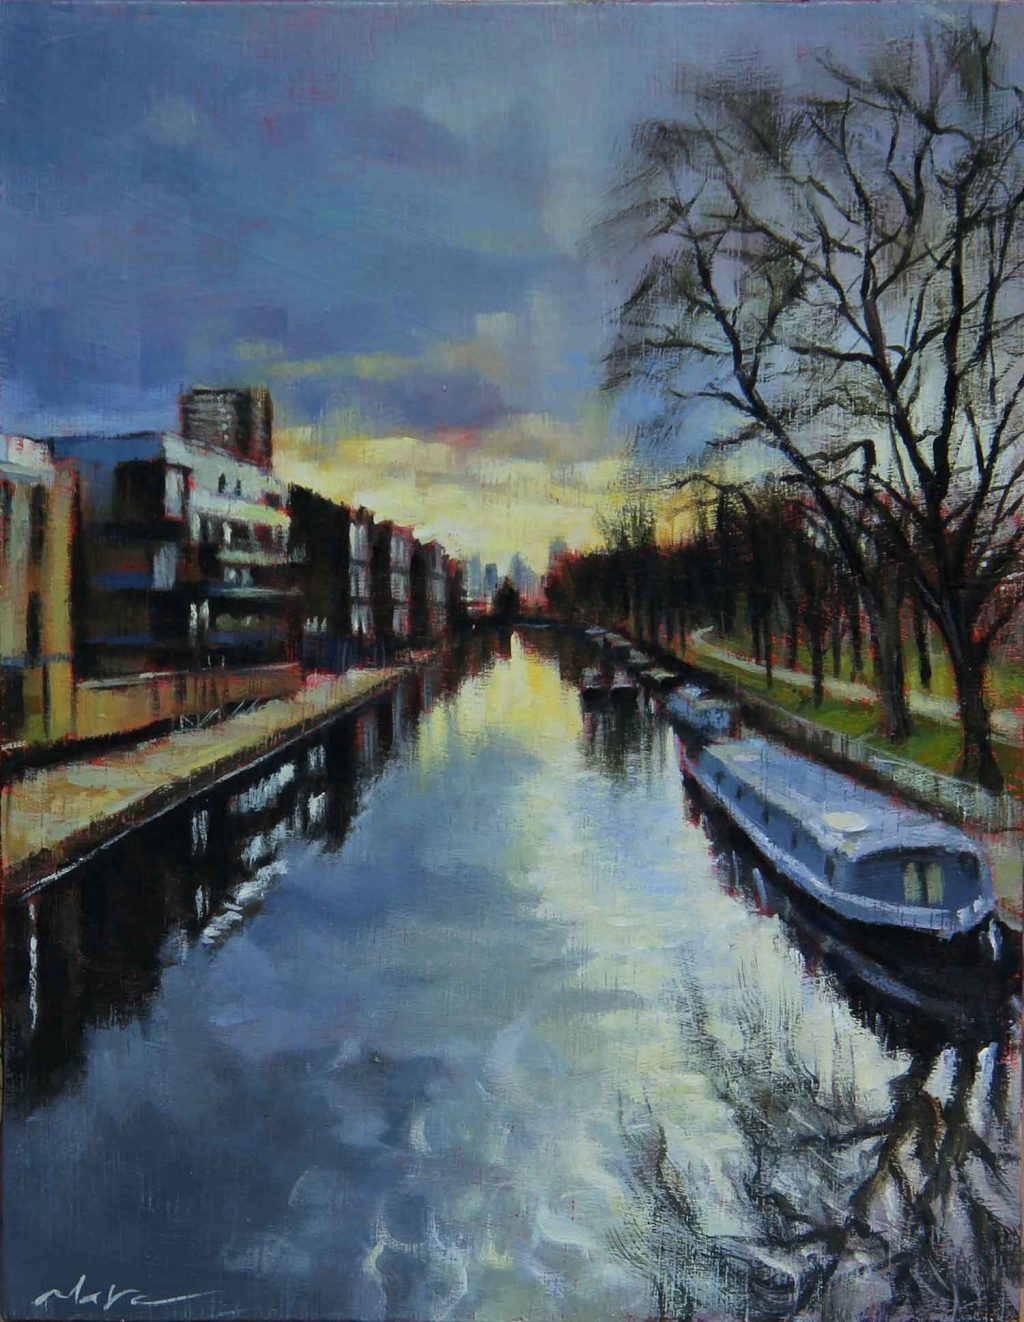 Canal by Victoria Park, painting by artist Marc Gooderman.